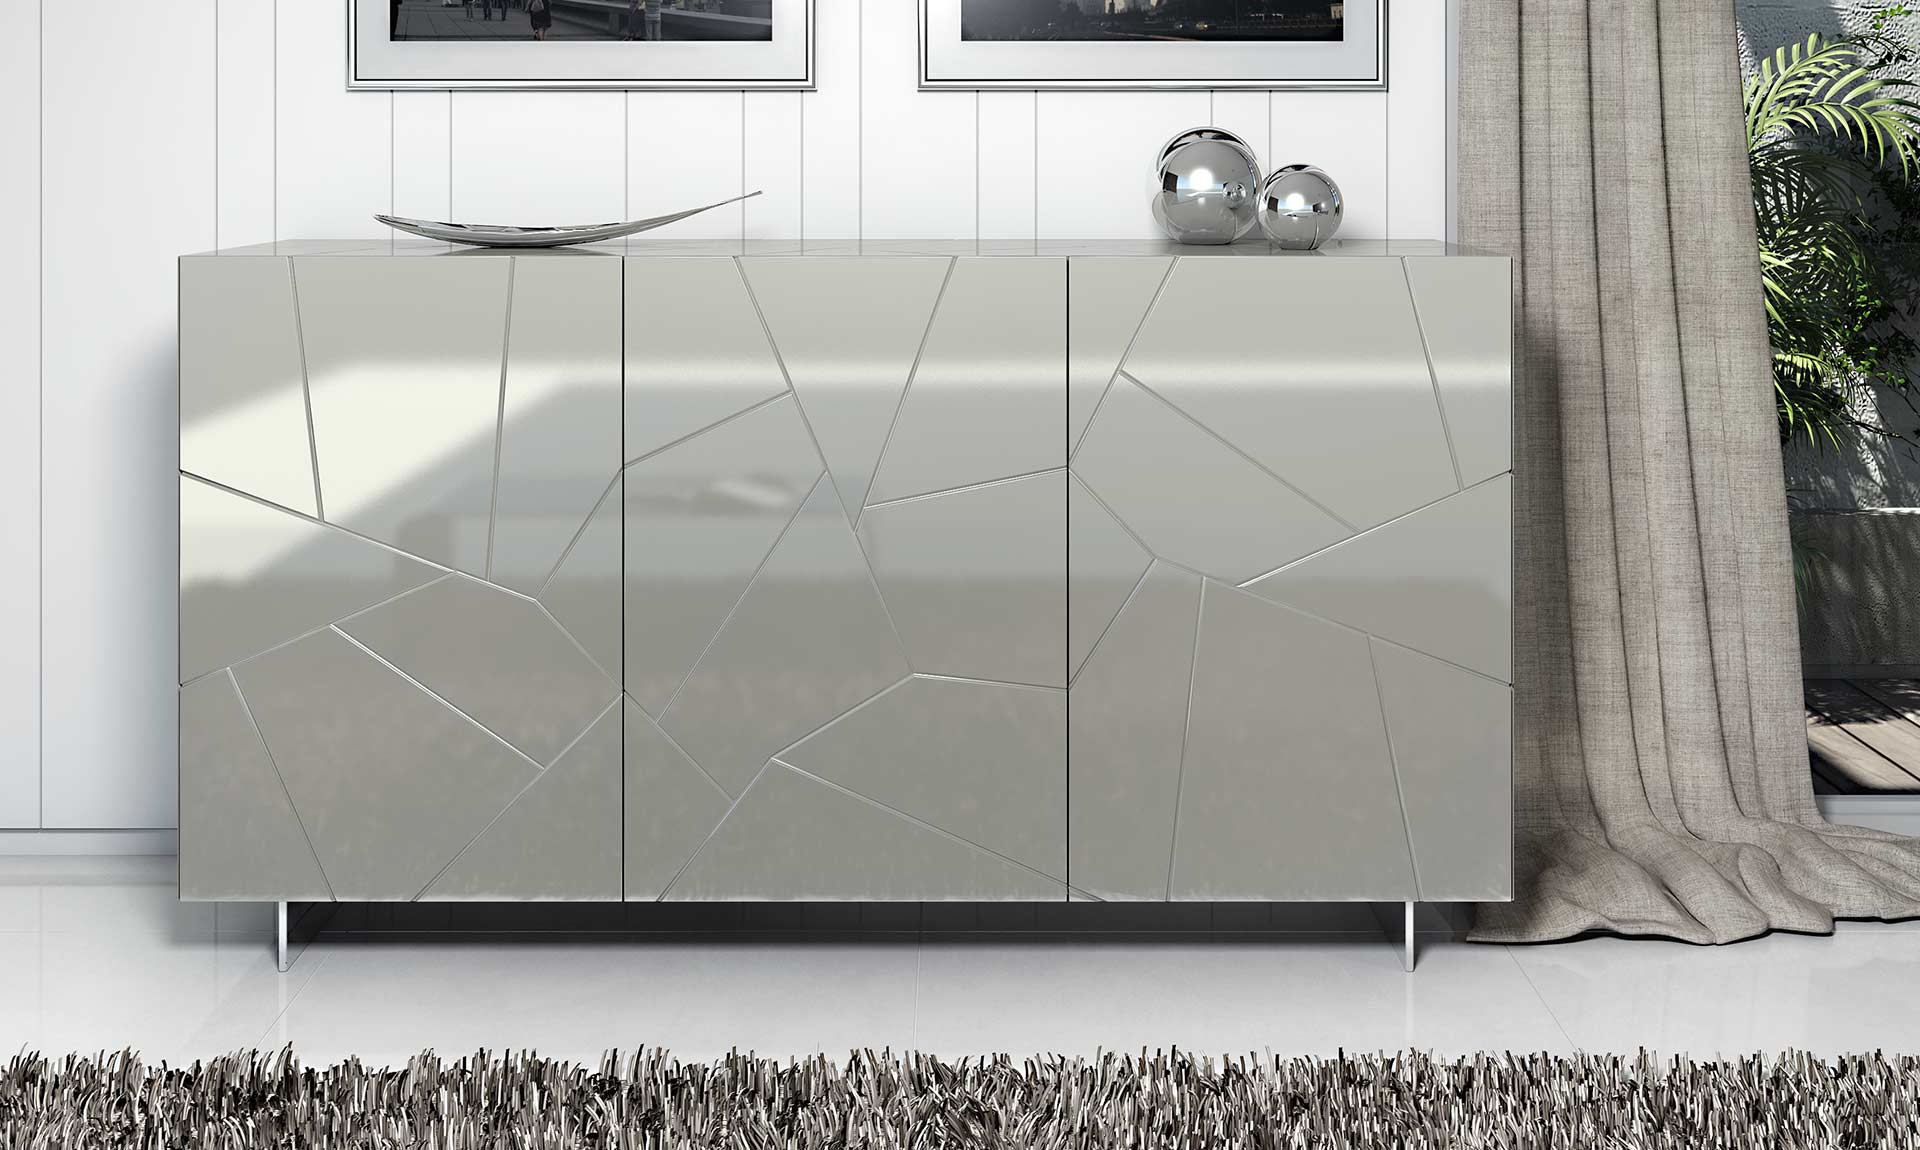 Custom Modern Italian Design sideboard SEGNO by Riflessi - made in Italy-lacquered-sideboard-segno-s3a-riflessi-detail-1